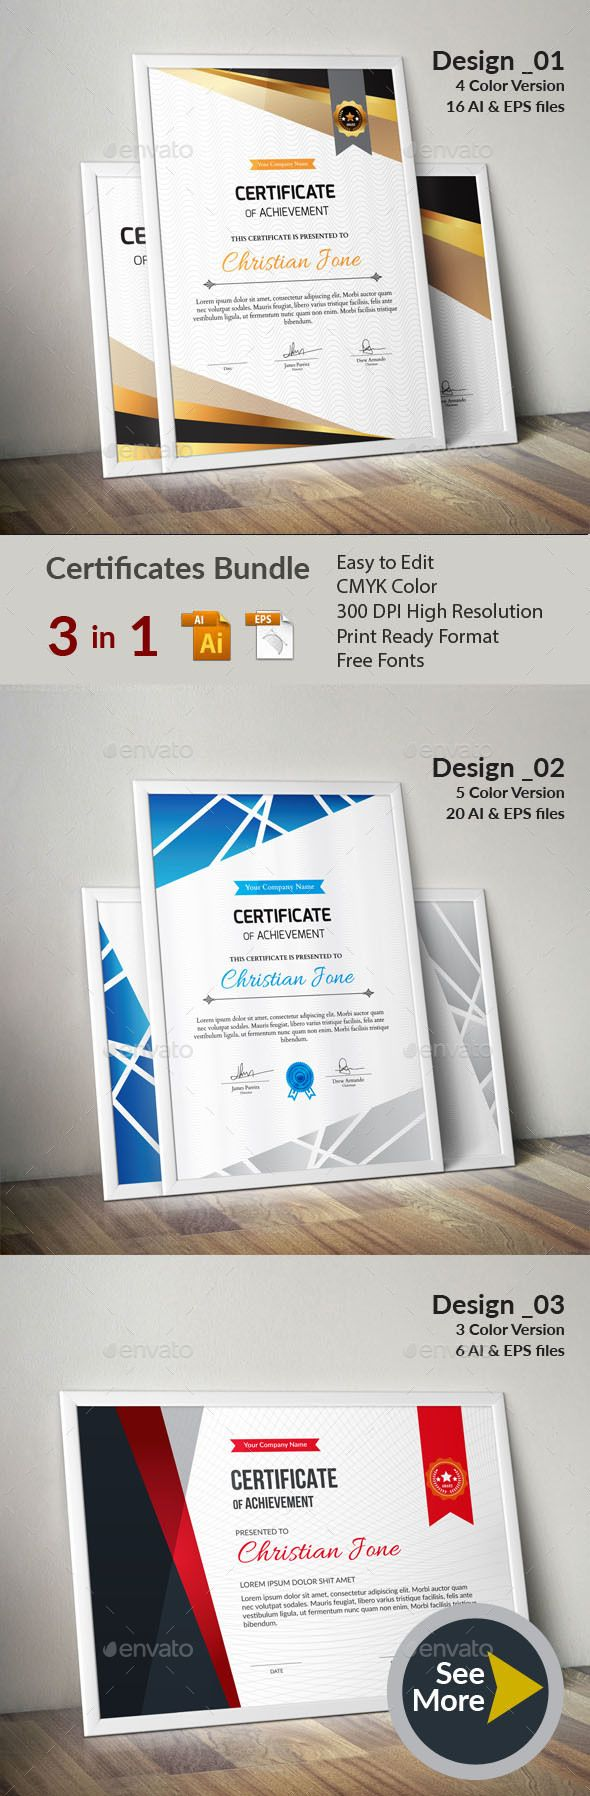 #Certificate - #Certificates Stationery Download here: https://graphicriver.net/item/certificate/19747928?ref=alena994